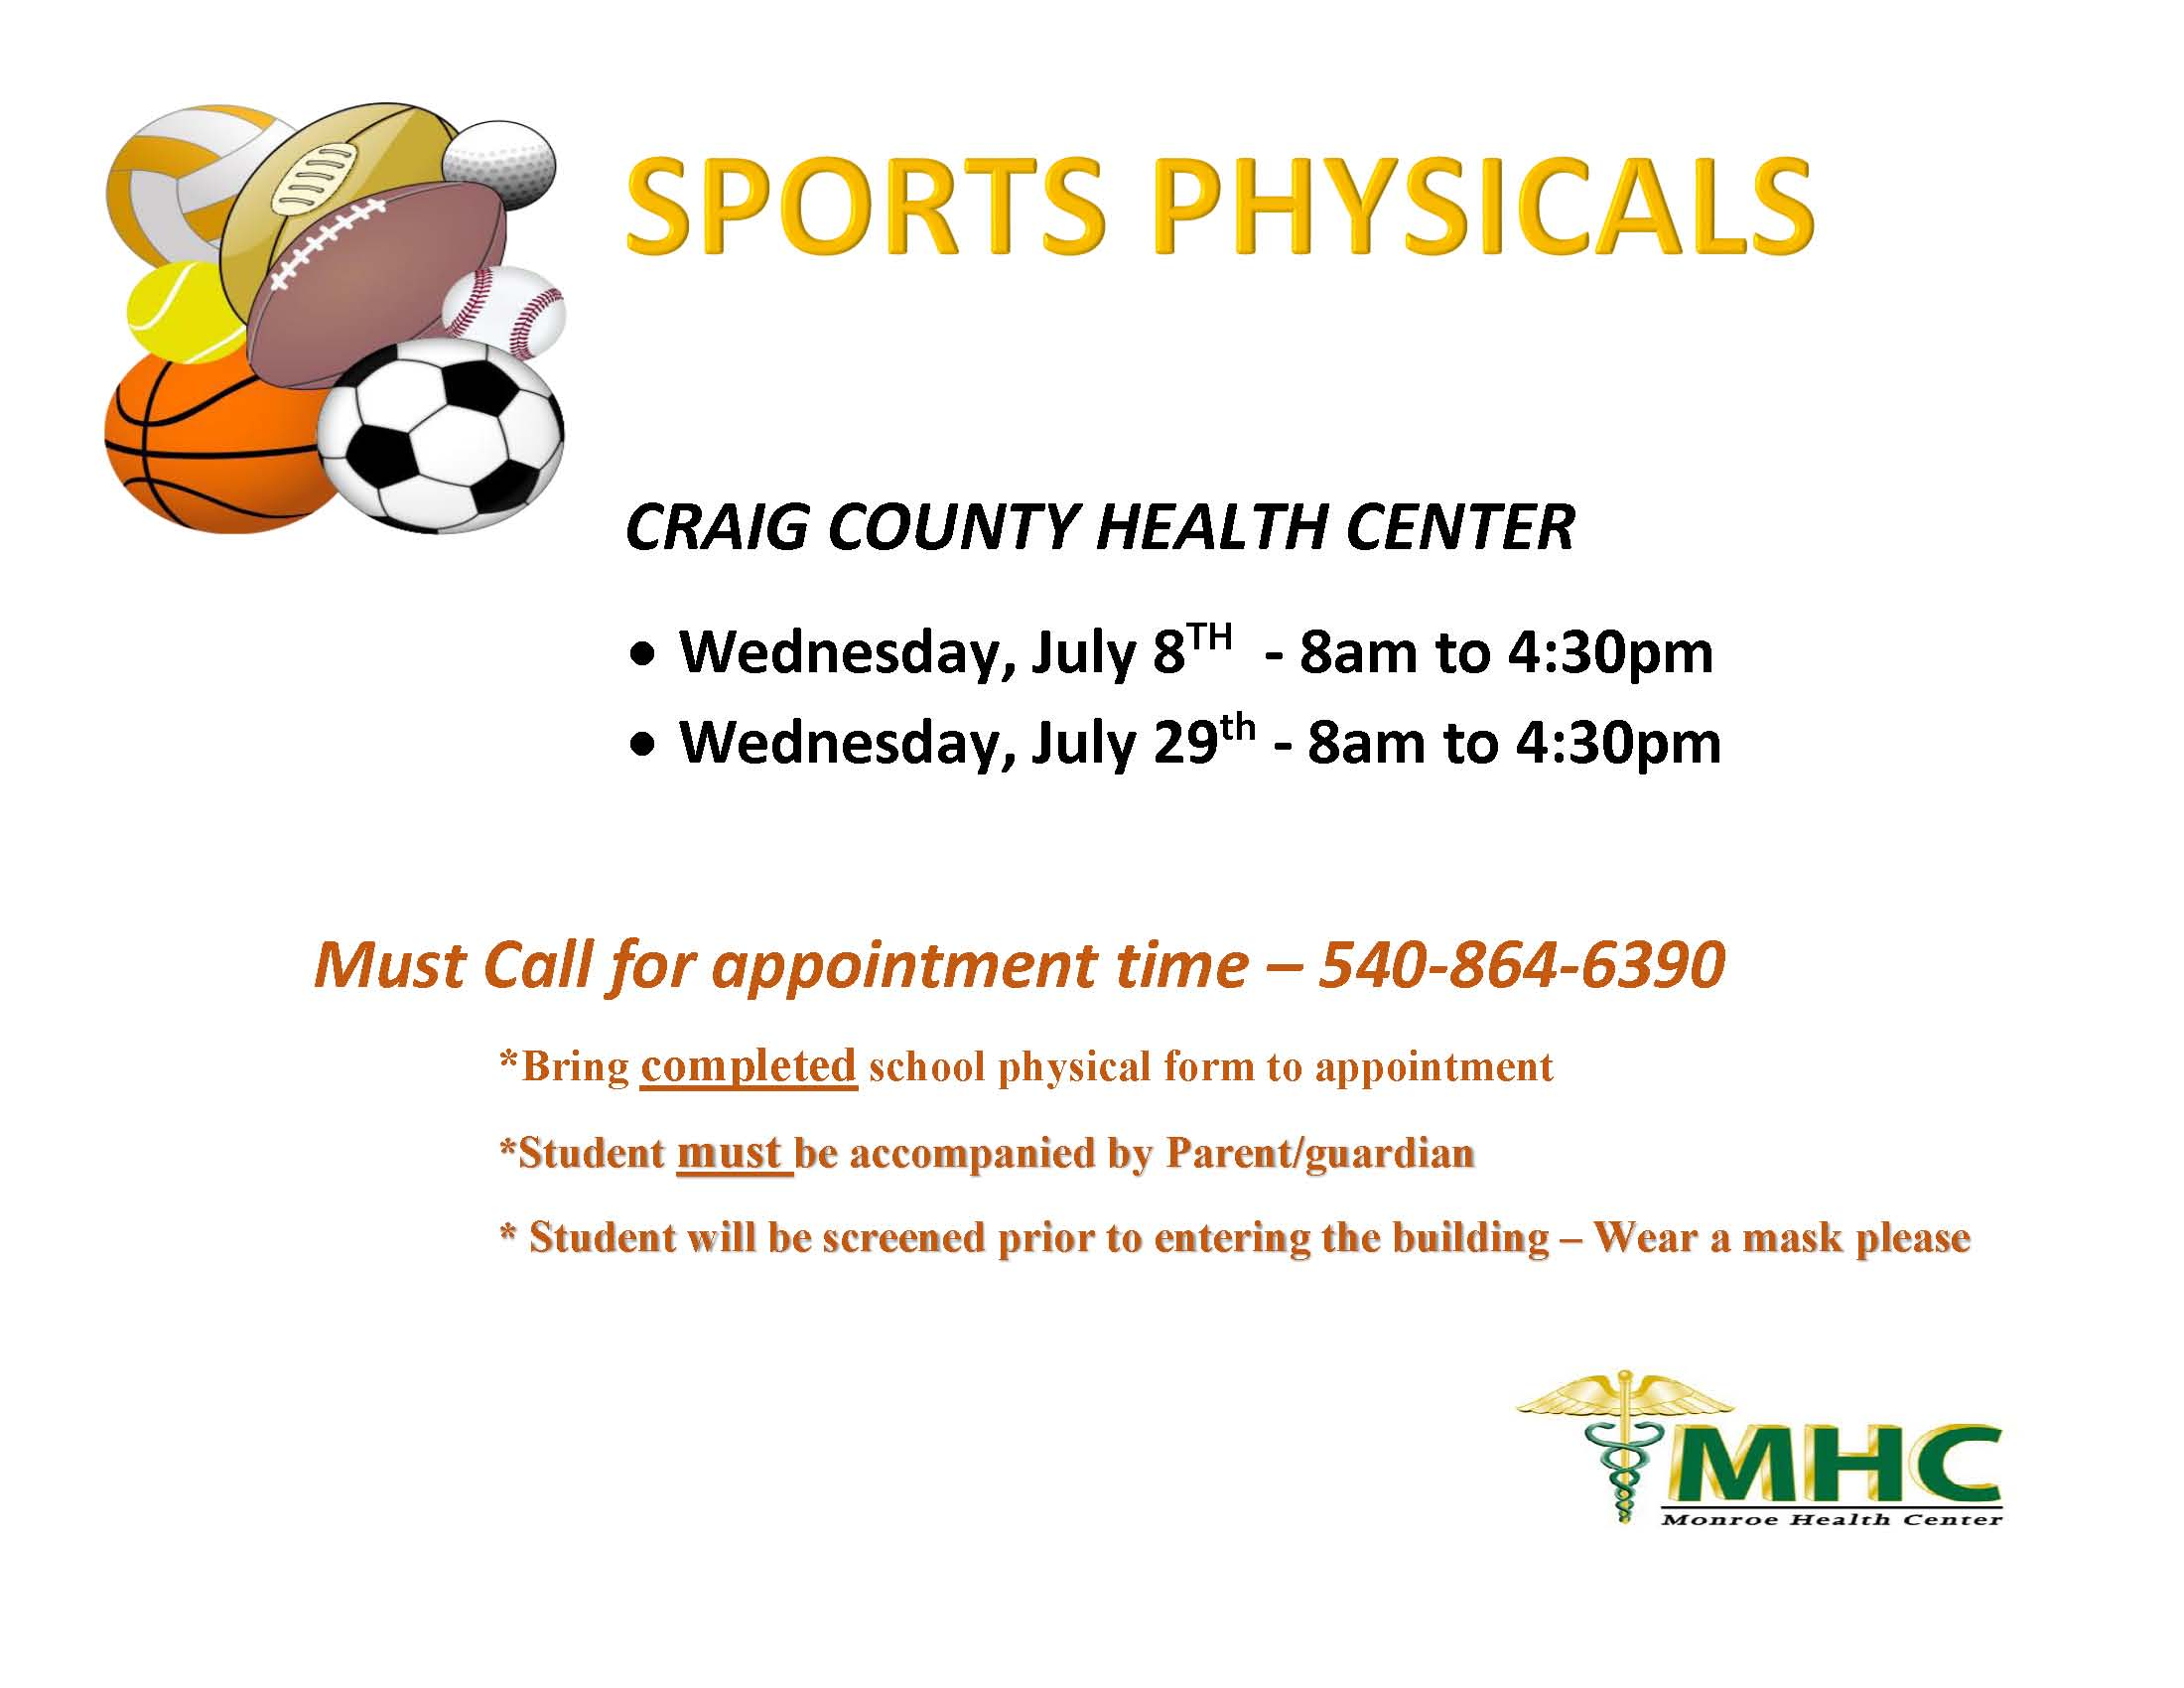 Sports physical flyer 2020 - cchc